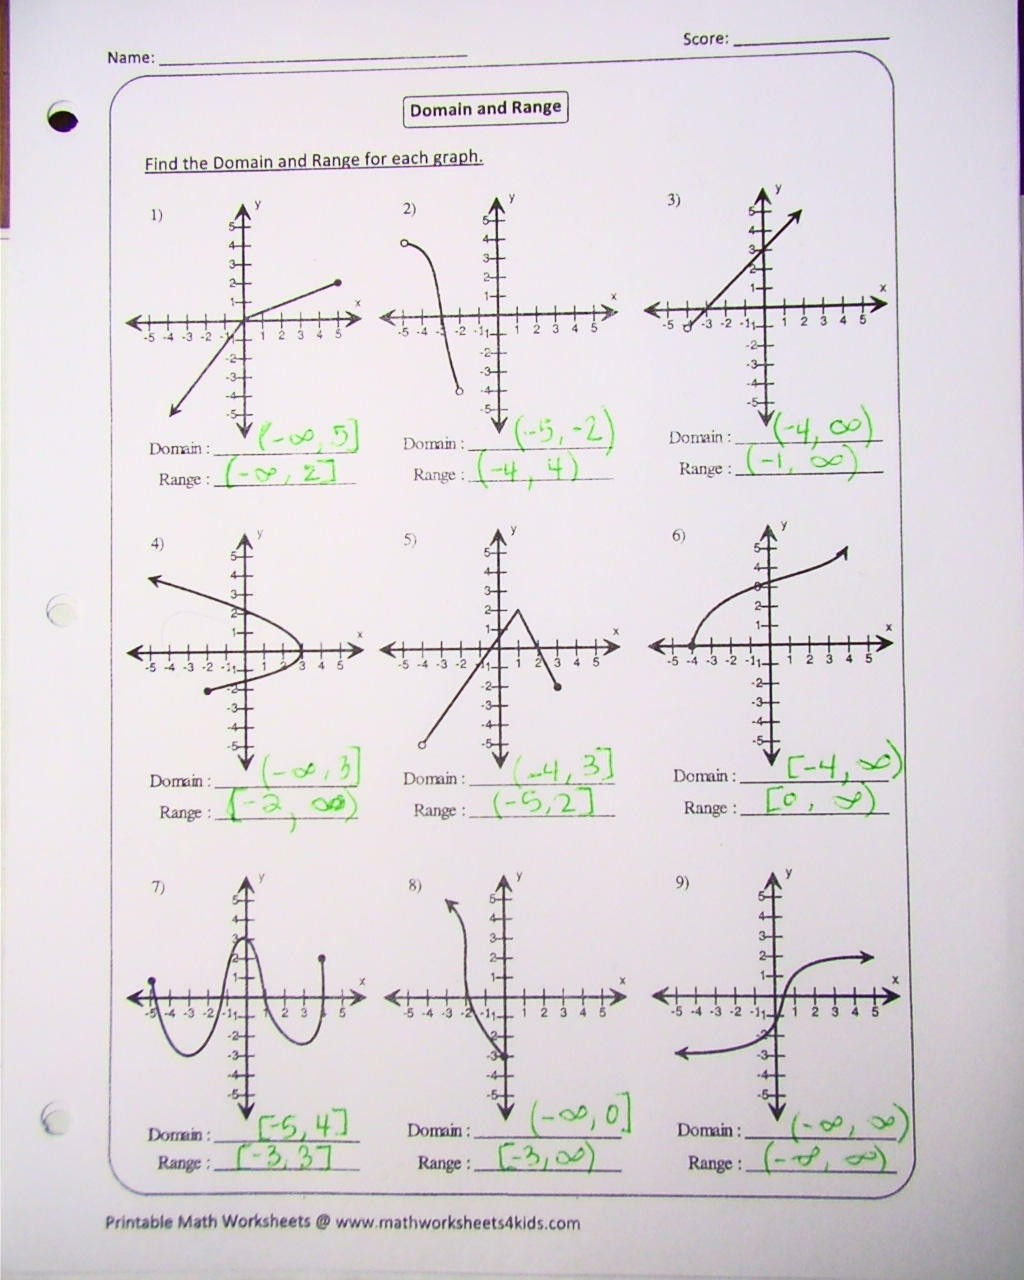 Domain And Range Homework Worksheet Answers Breadandhearth